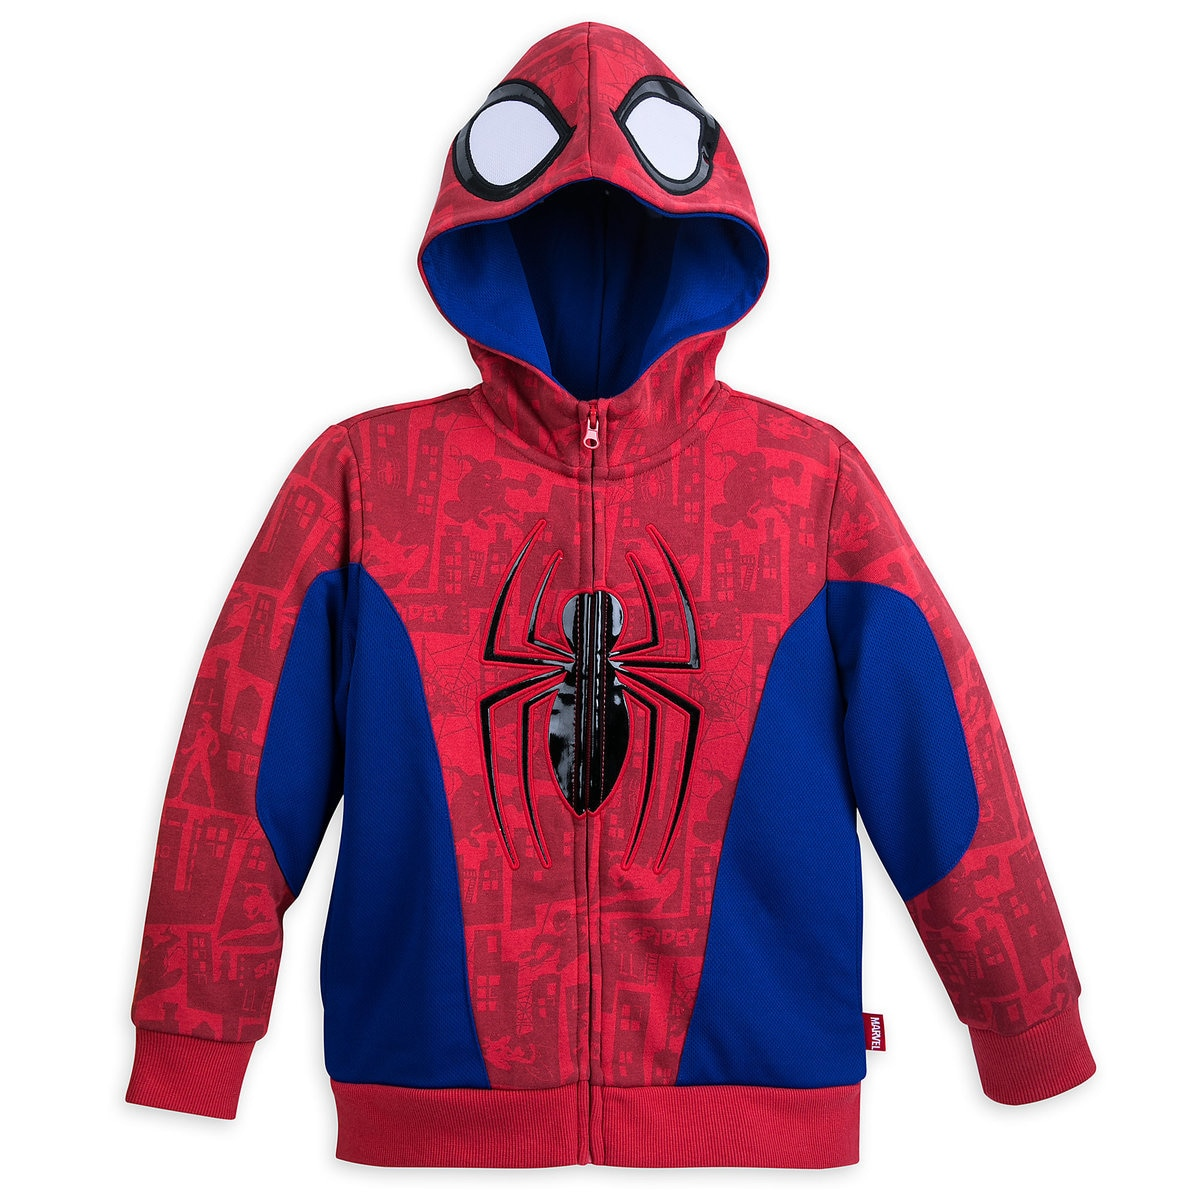 0d6bf250d991 Product Image of Spider-Man Costume Fleece Hoodie for Boys # 1